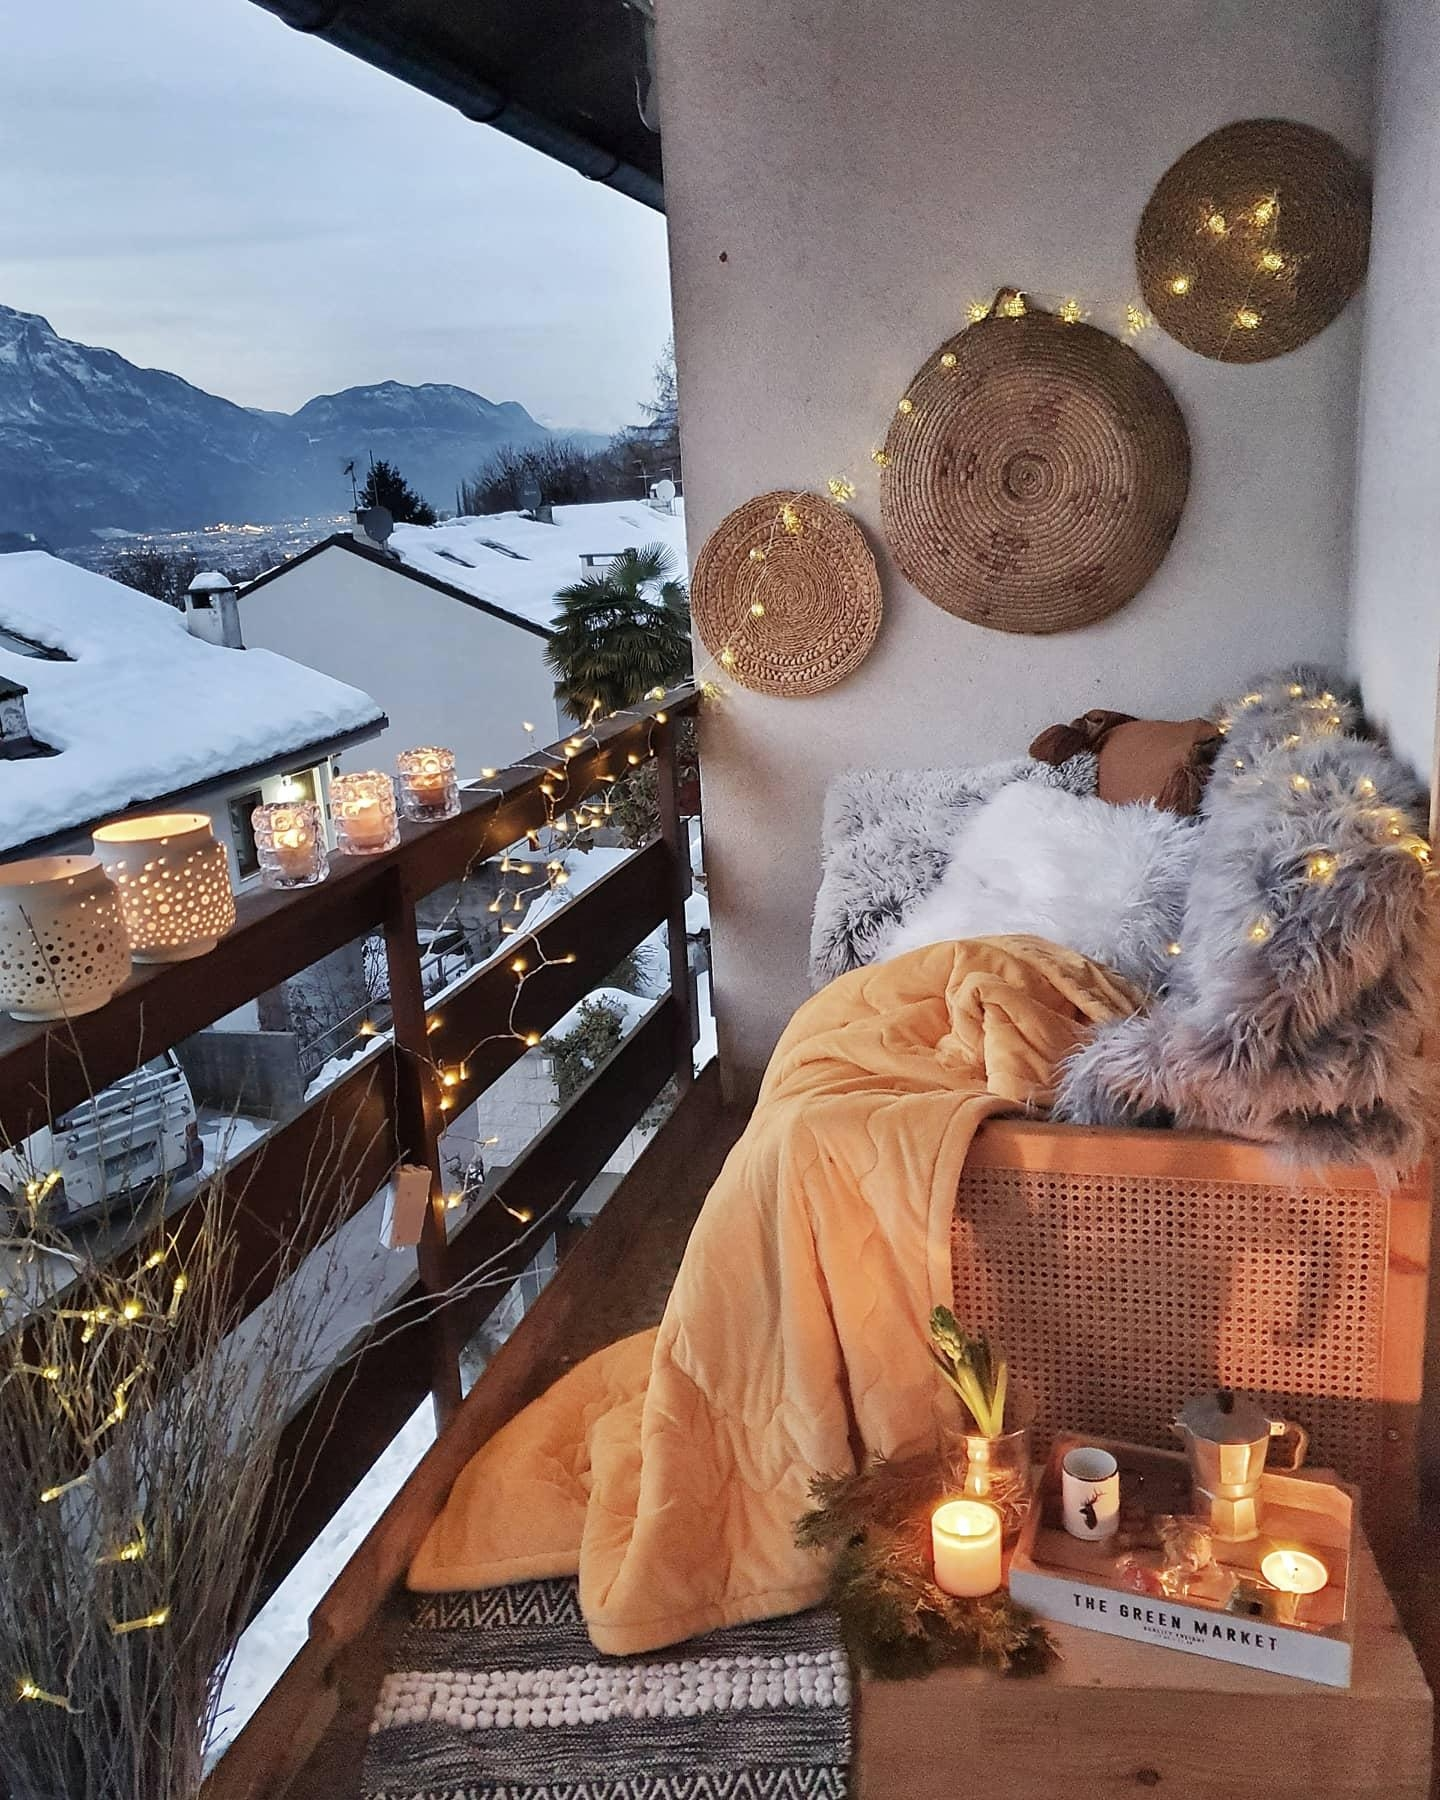 #winter #balkon #couchliebt #interior #italien #boho #hygge #cozy